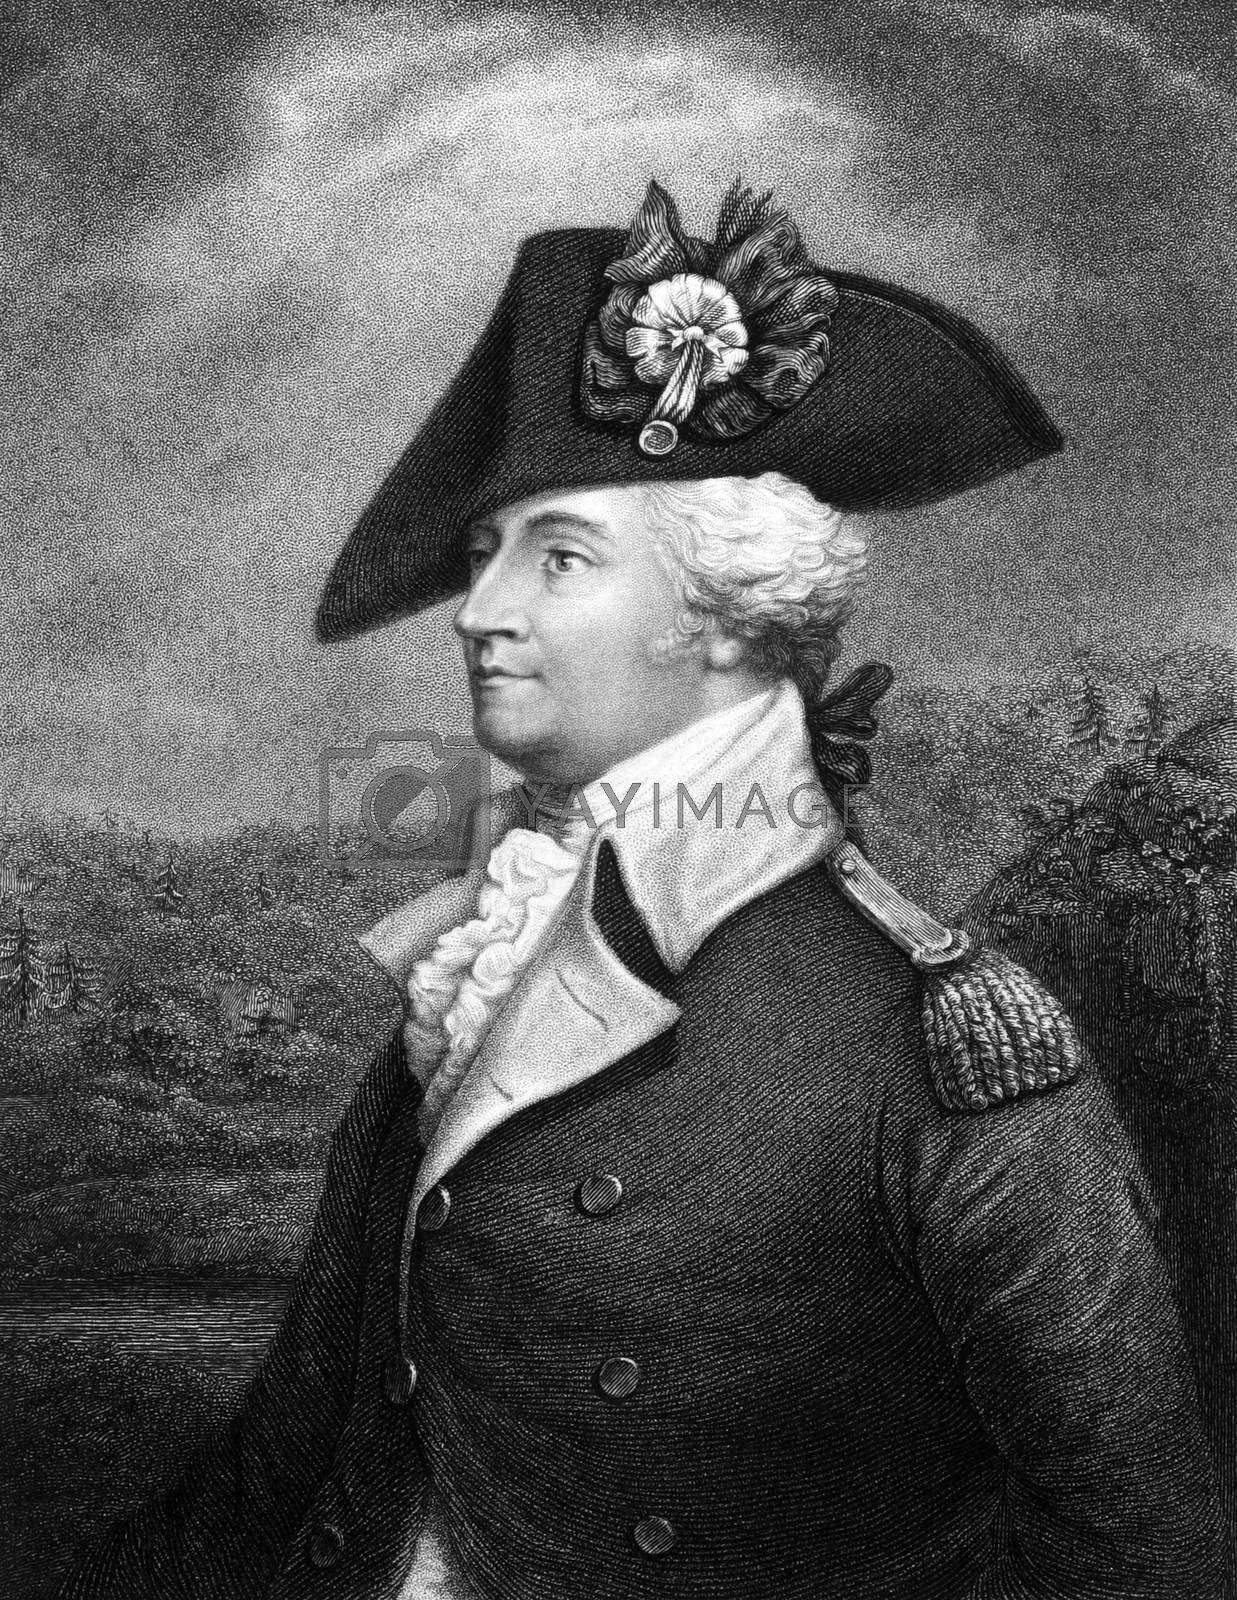 Anthony Wayne (1745-1796) on engraving from 1834.  United States Army officer, statesman and member of the House of Representatives. Engraved by E. Prudhomnie and published in ''National Portrait Gallery of Distinguished Americans'',USA,1834.